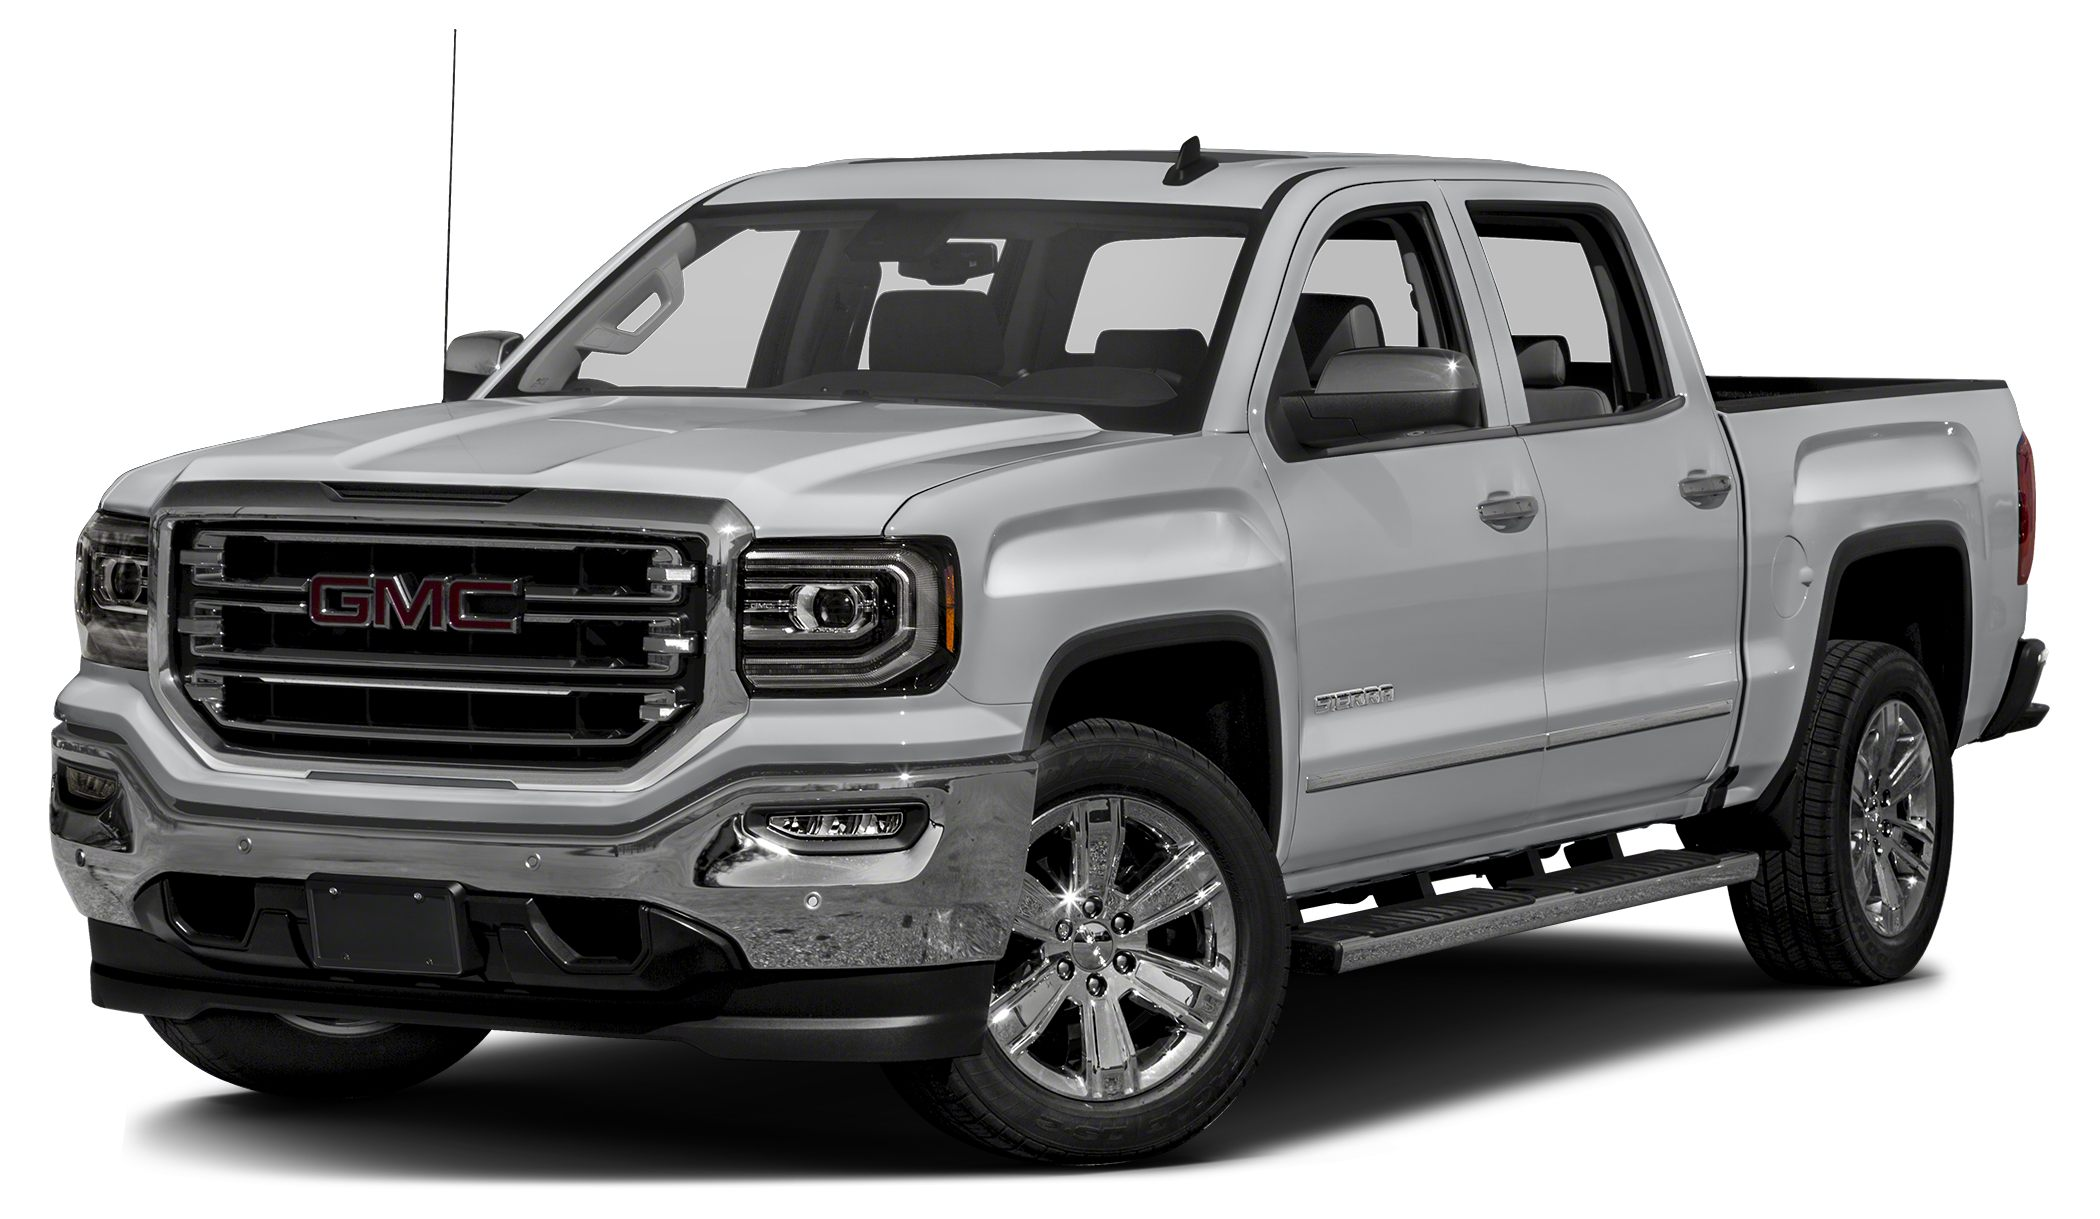 2017 GMC Sierra 1500 SLT With such great unique features like a premium sound system dual climate